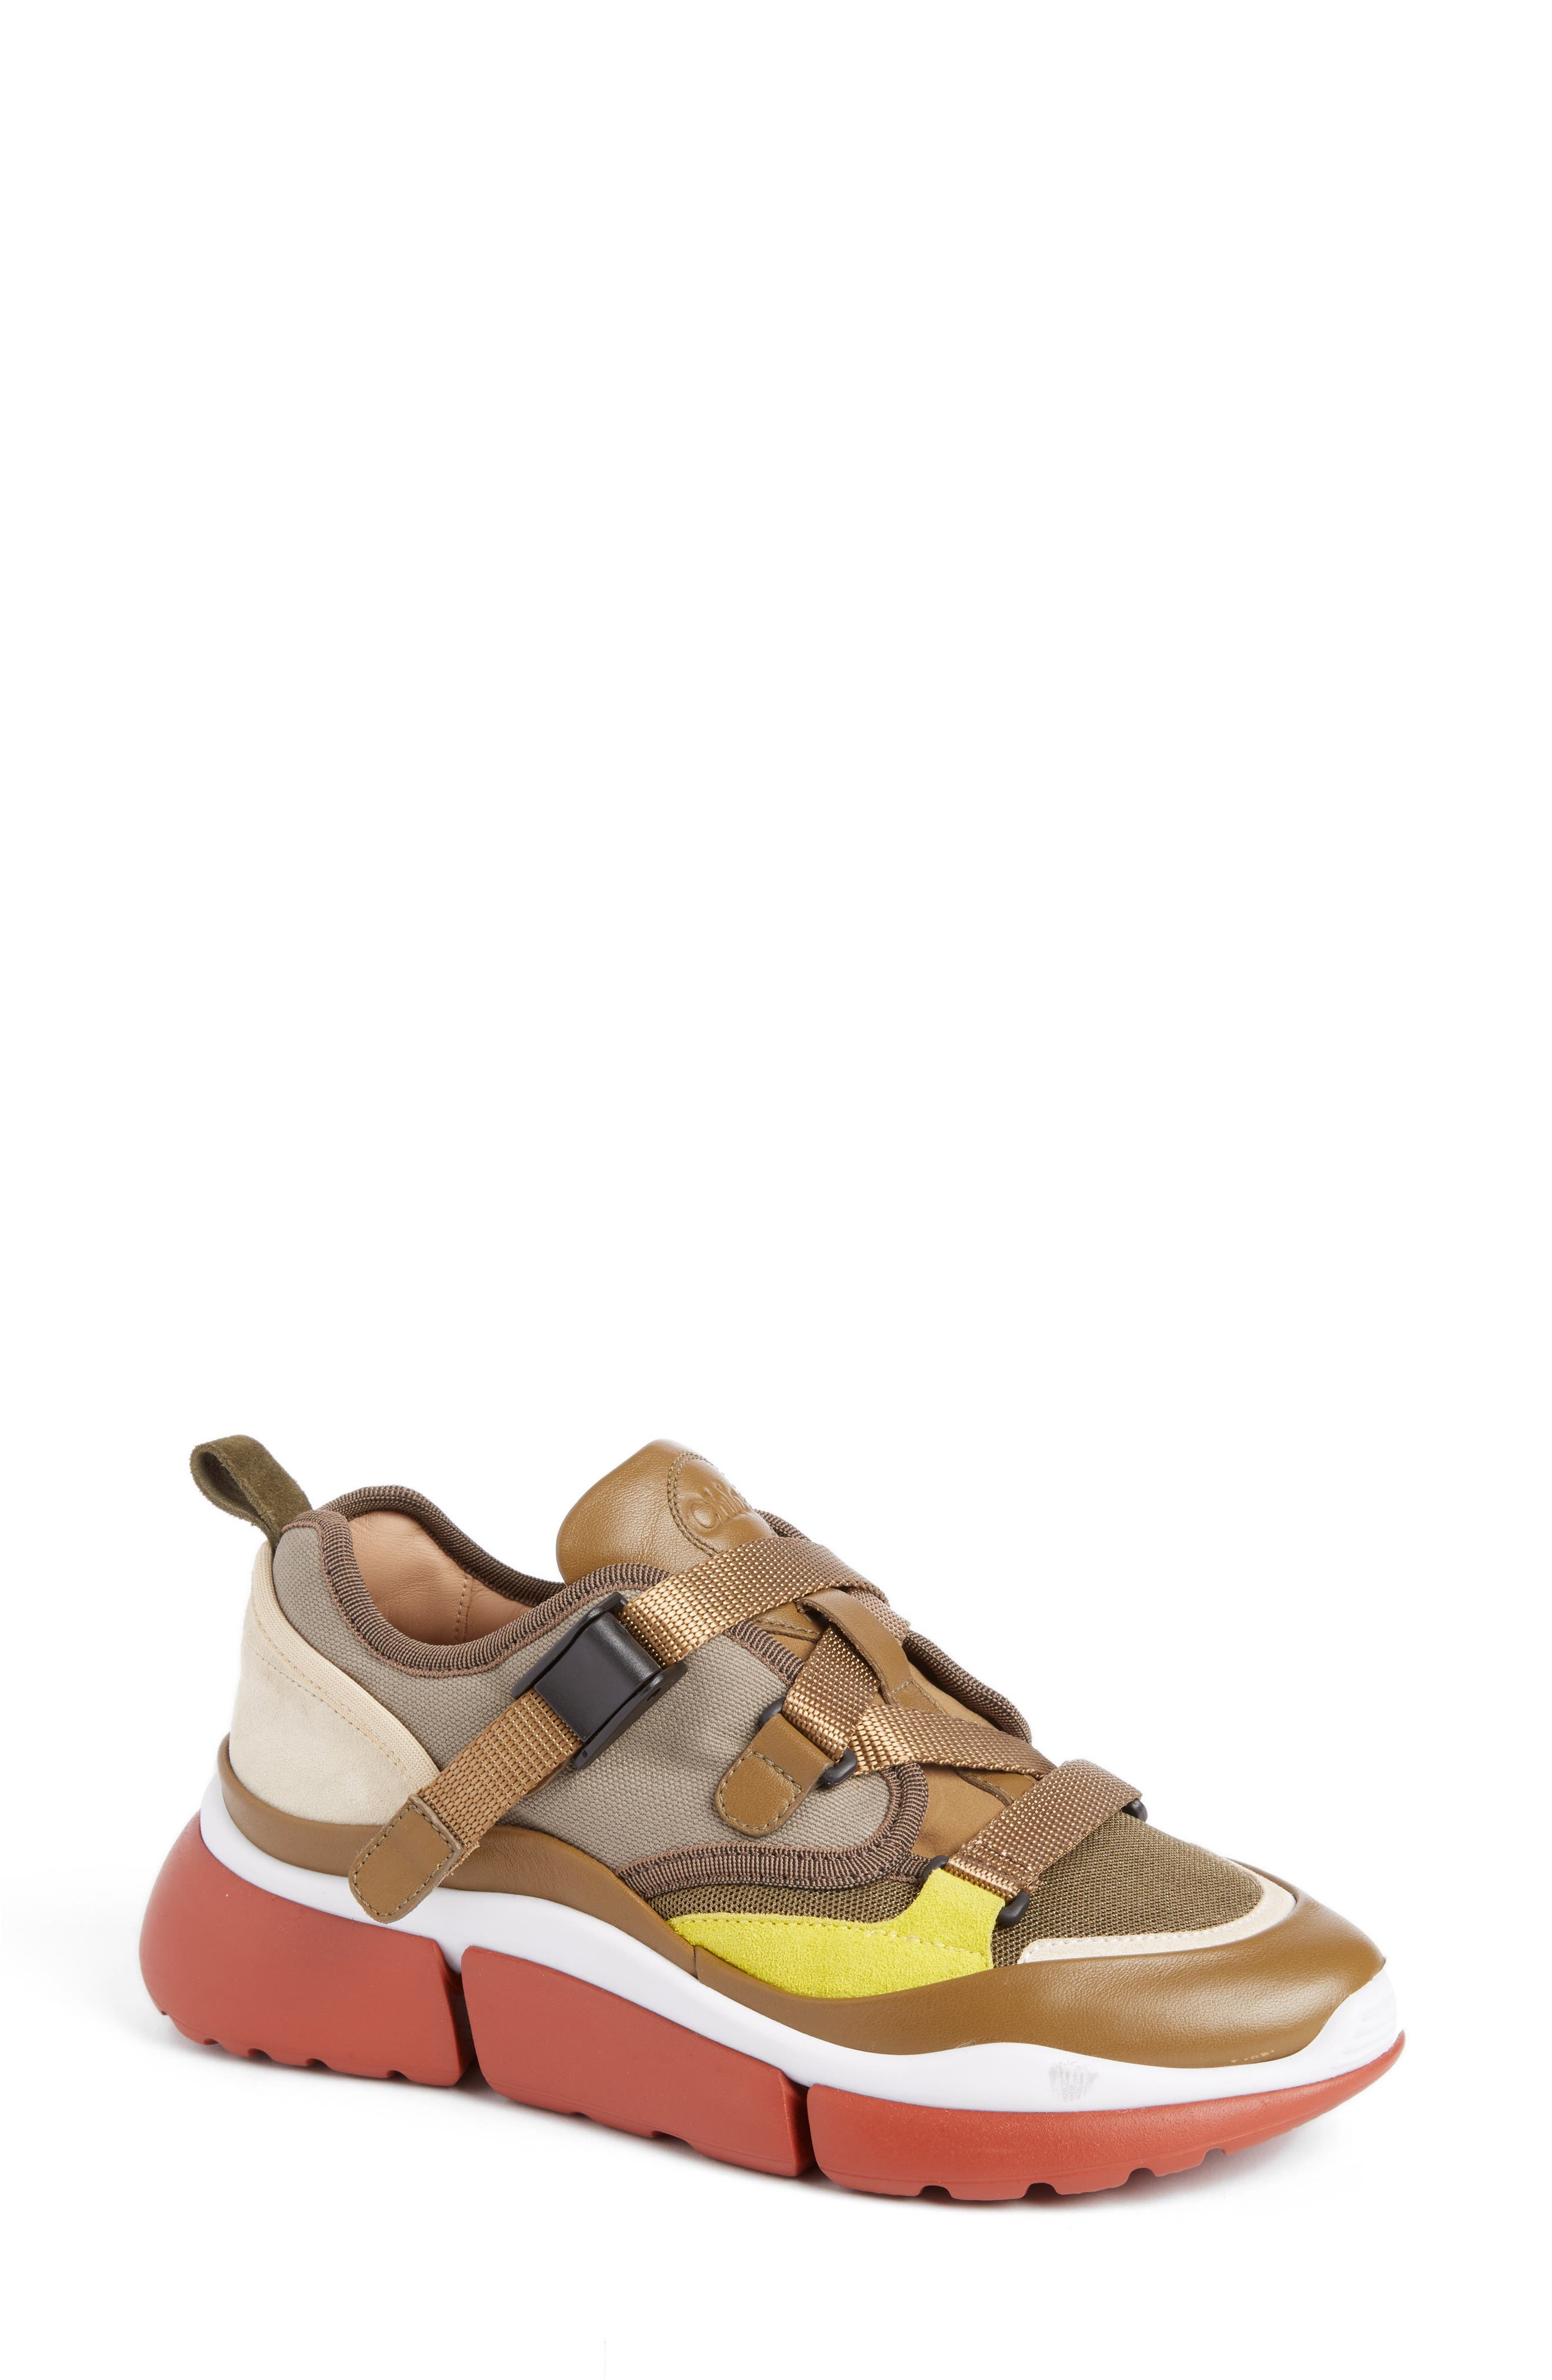 Sonnie Low Top Sneaker,                         Main,                         color, Sooty Khaki